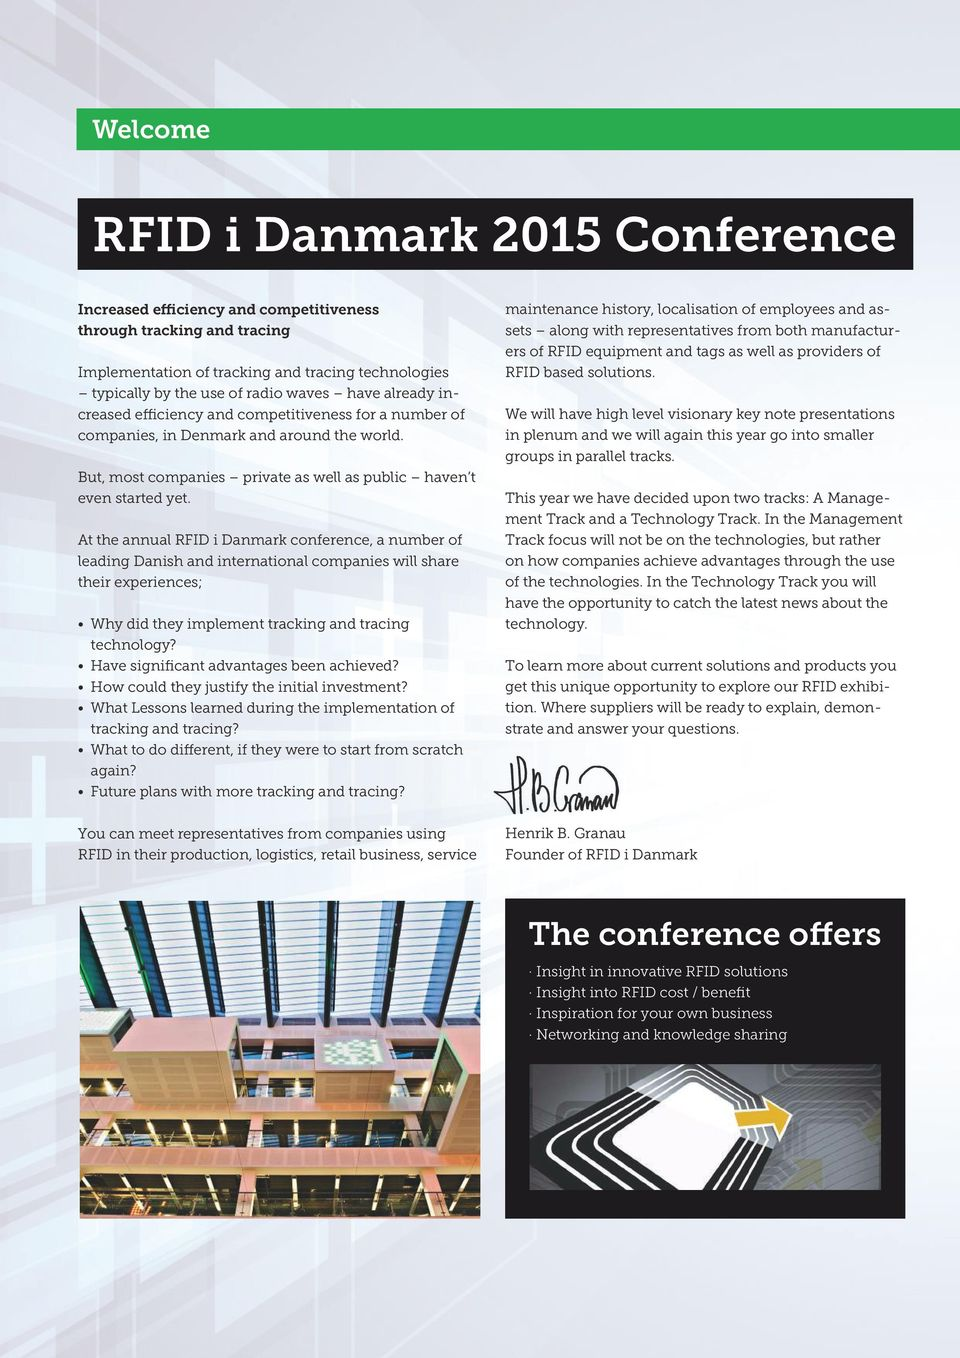 At the annual RFID i Danmark conference, a number of leading Danish and international companies will share their experiences; Why did they implement tracking and tracing technology?